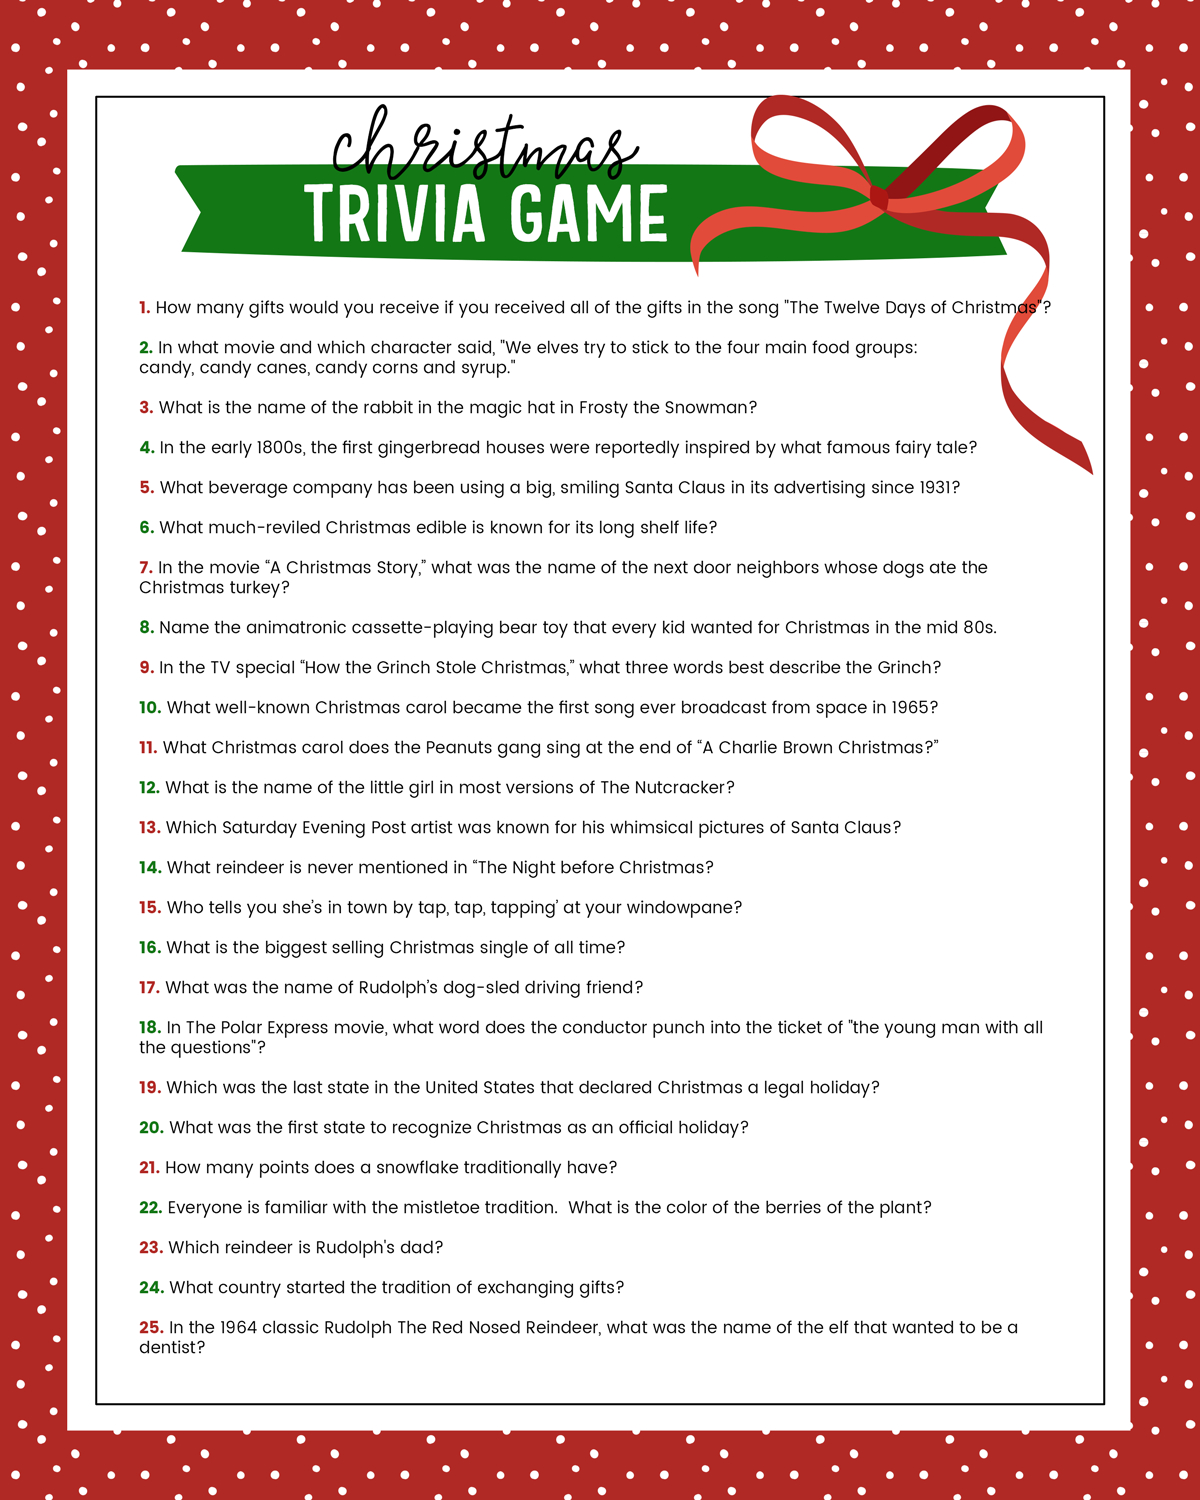 Free Christmas Trivia Game | Lil' Luna - Free Printable Christmas Games For Family Gatherings